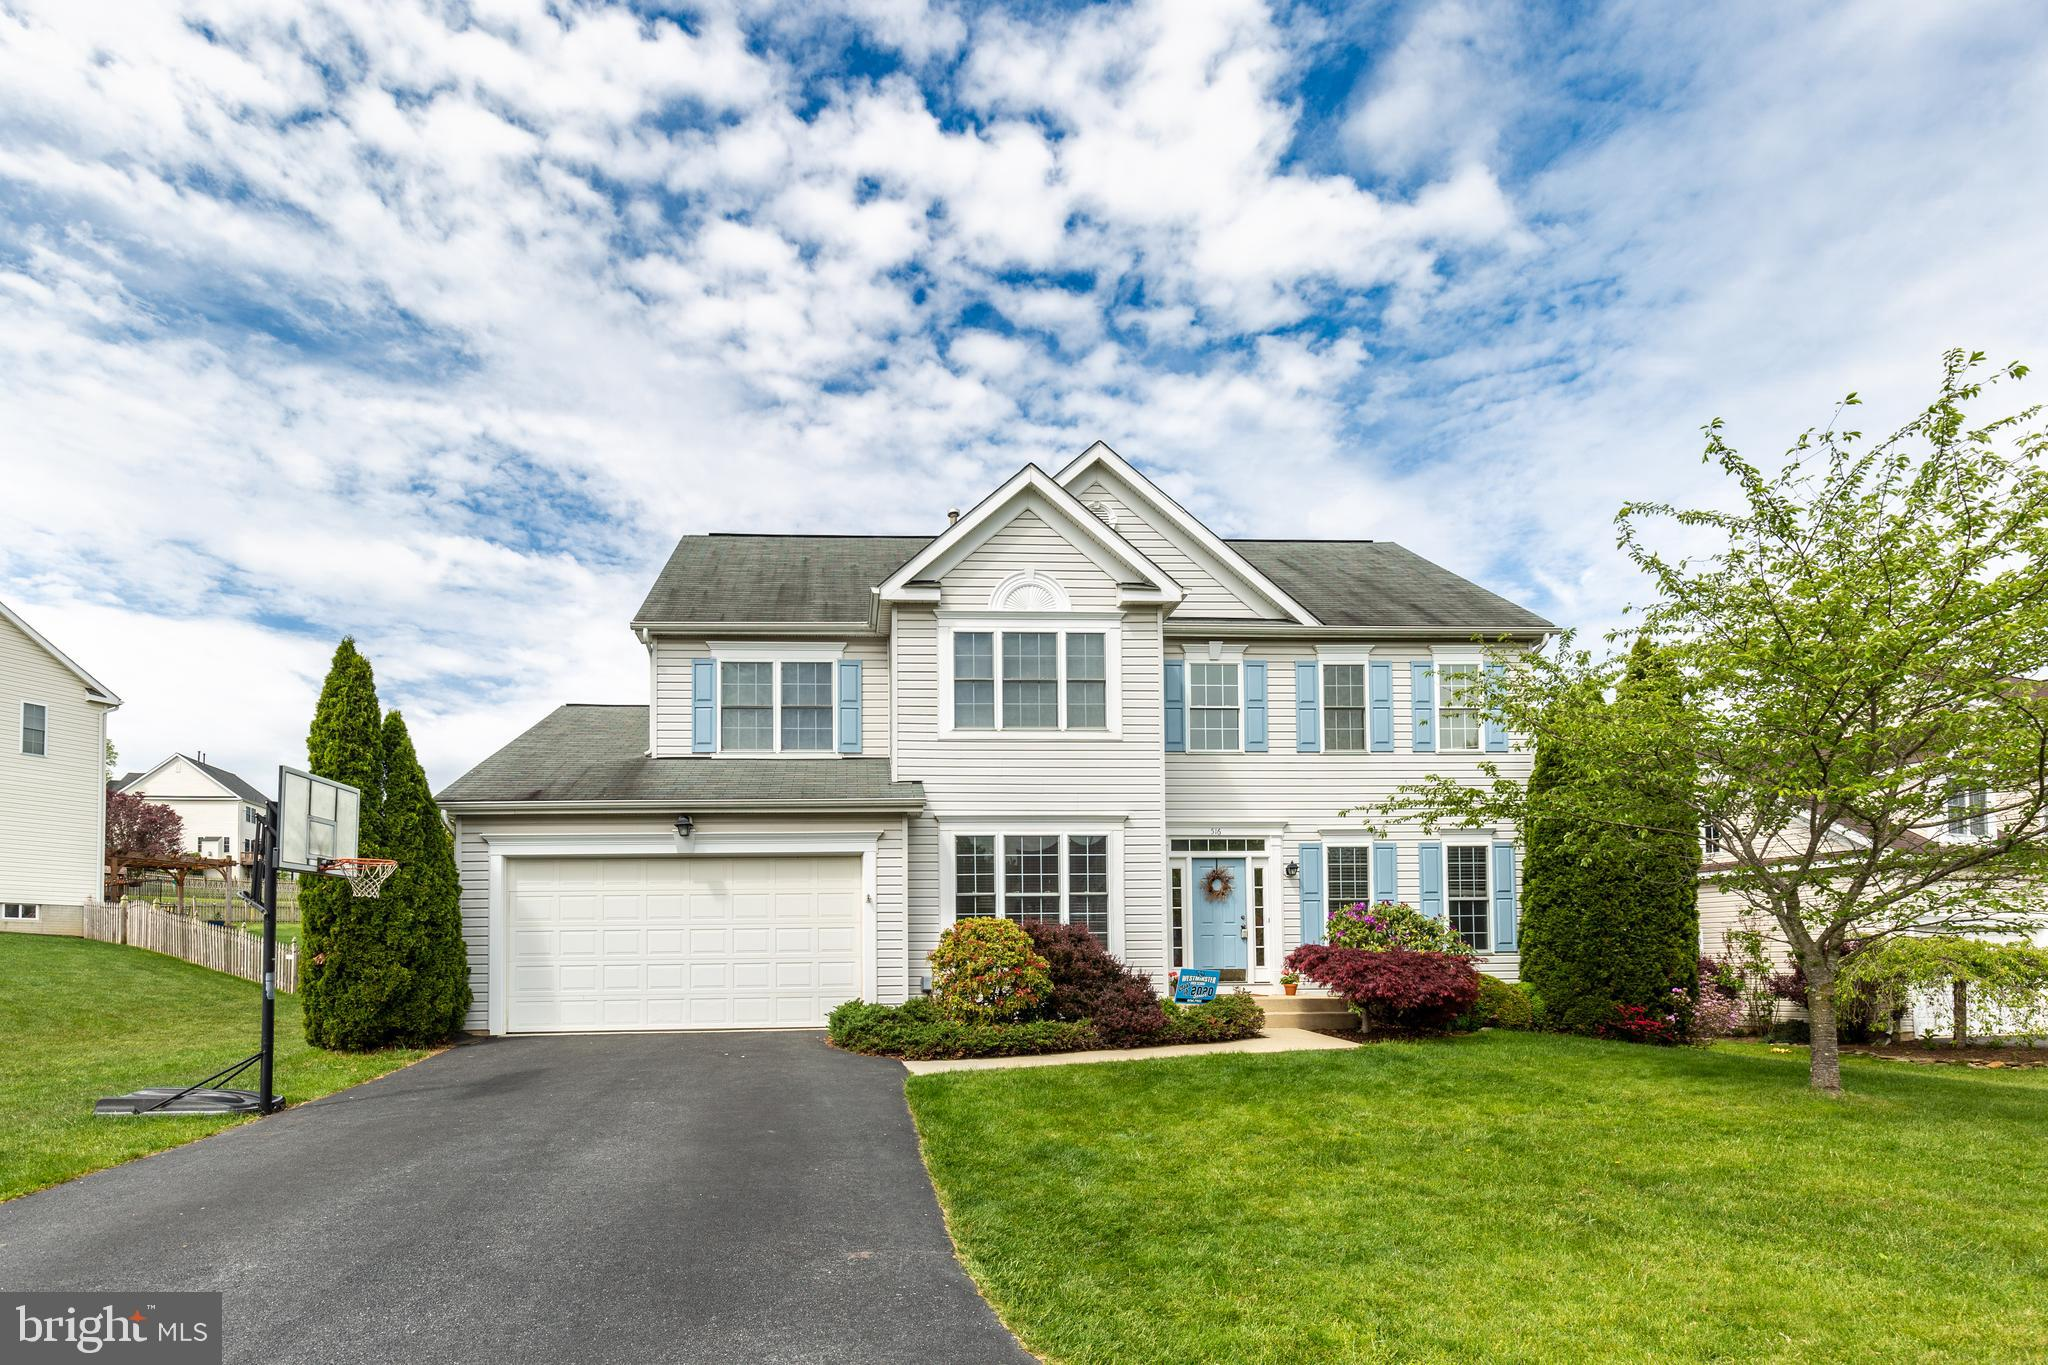 Lovely 4 bed, 2.5 bath colonial in the sought after community of Windmere Farms. Family room feature